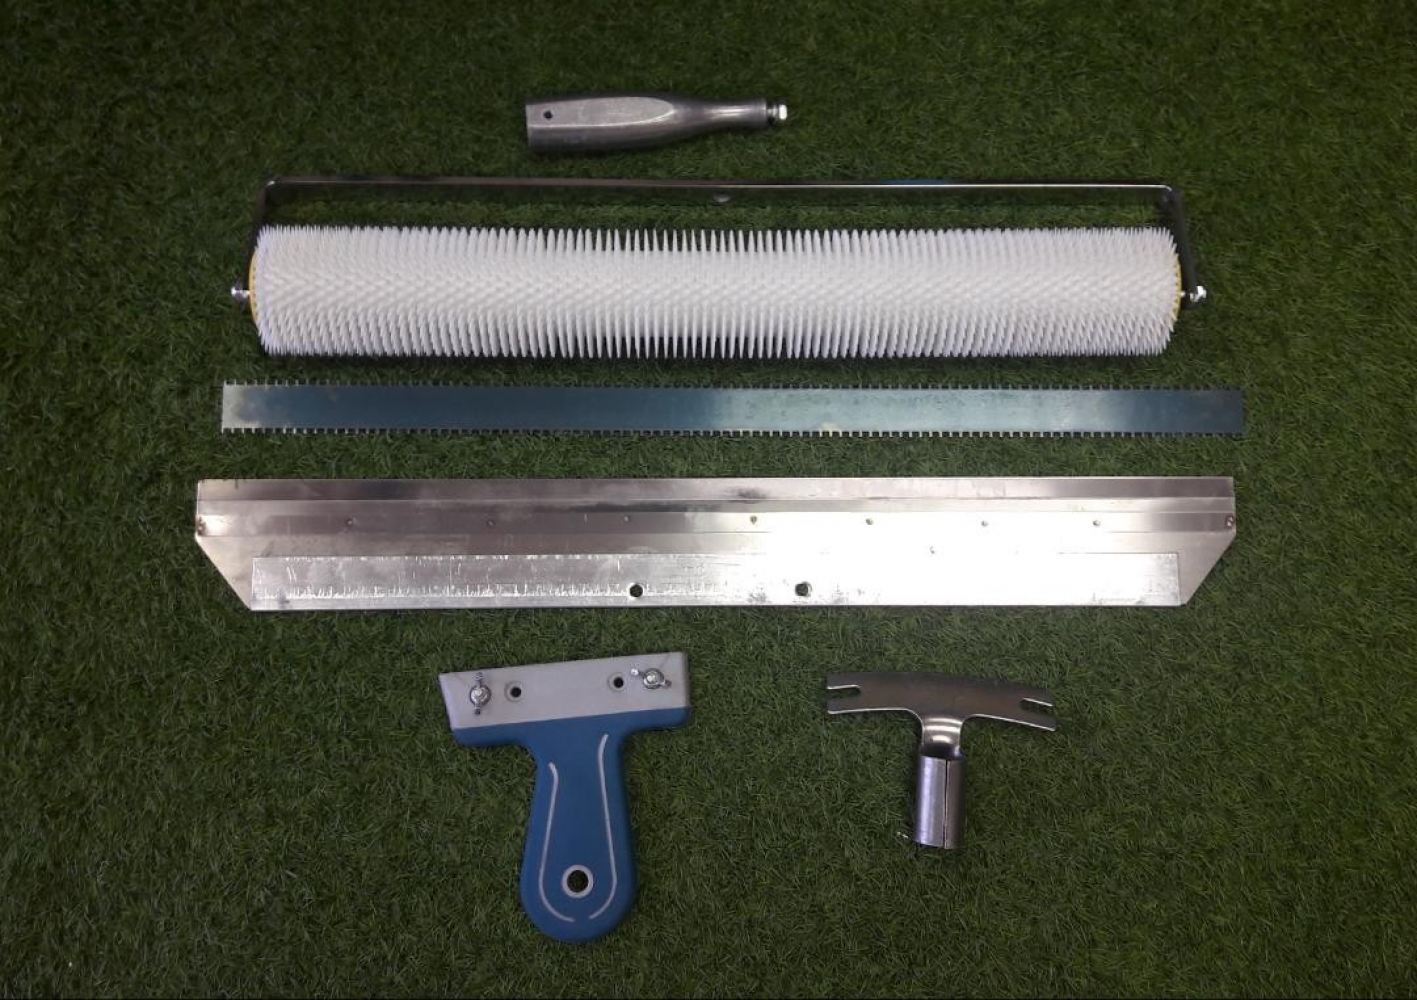 Self Leveling Tools - Roller & Scrapper